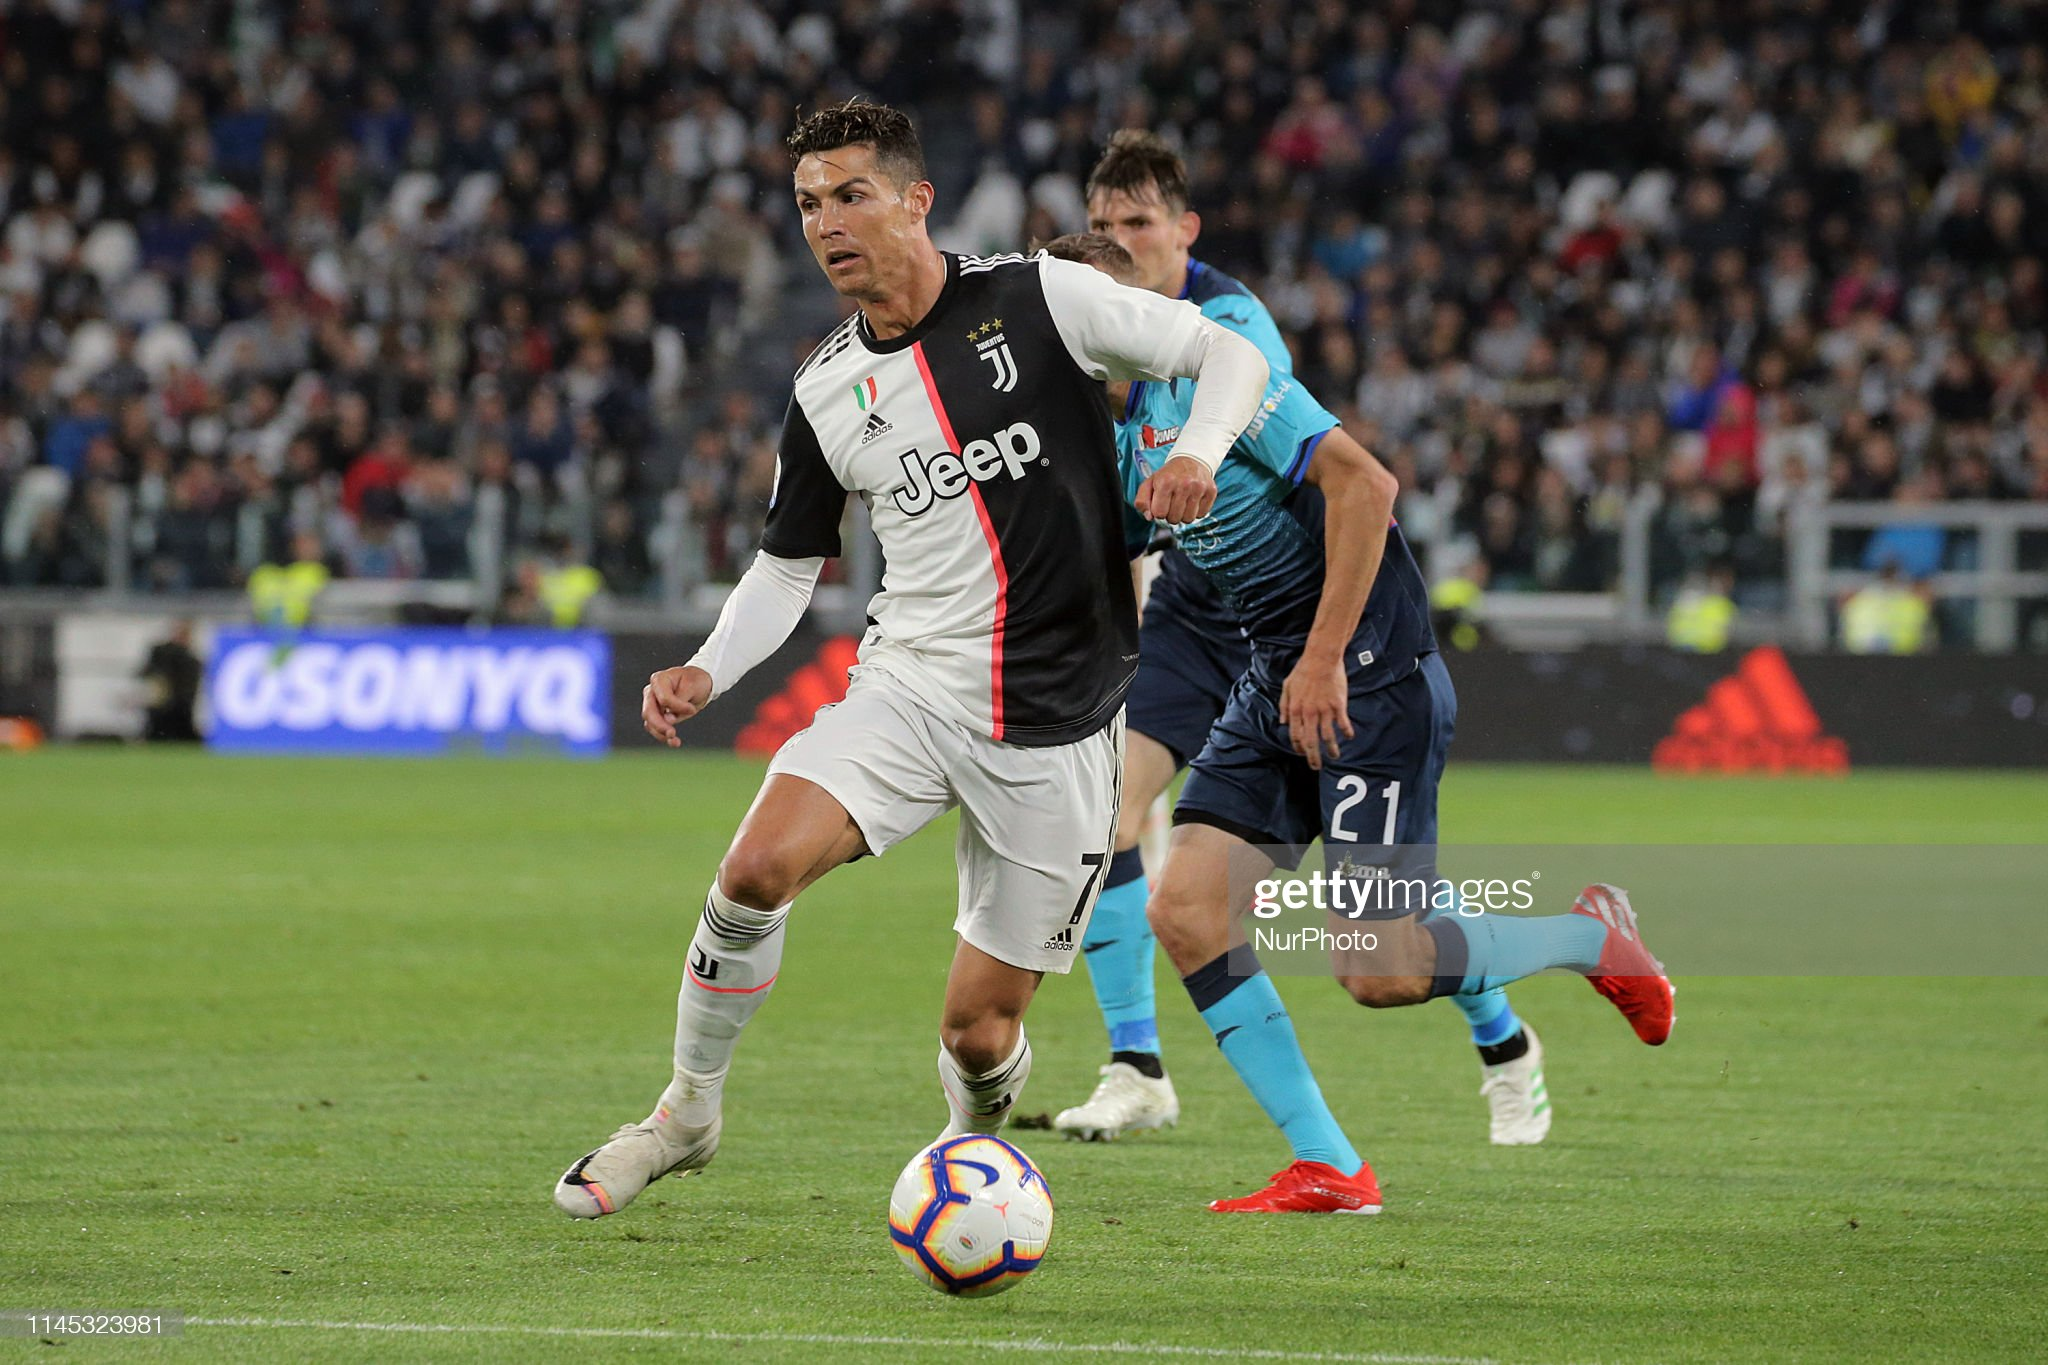 Atalanta v Juventus preview, prediction and odds